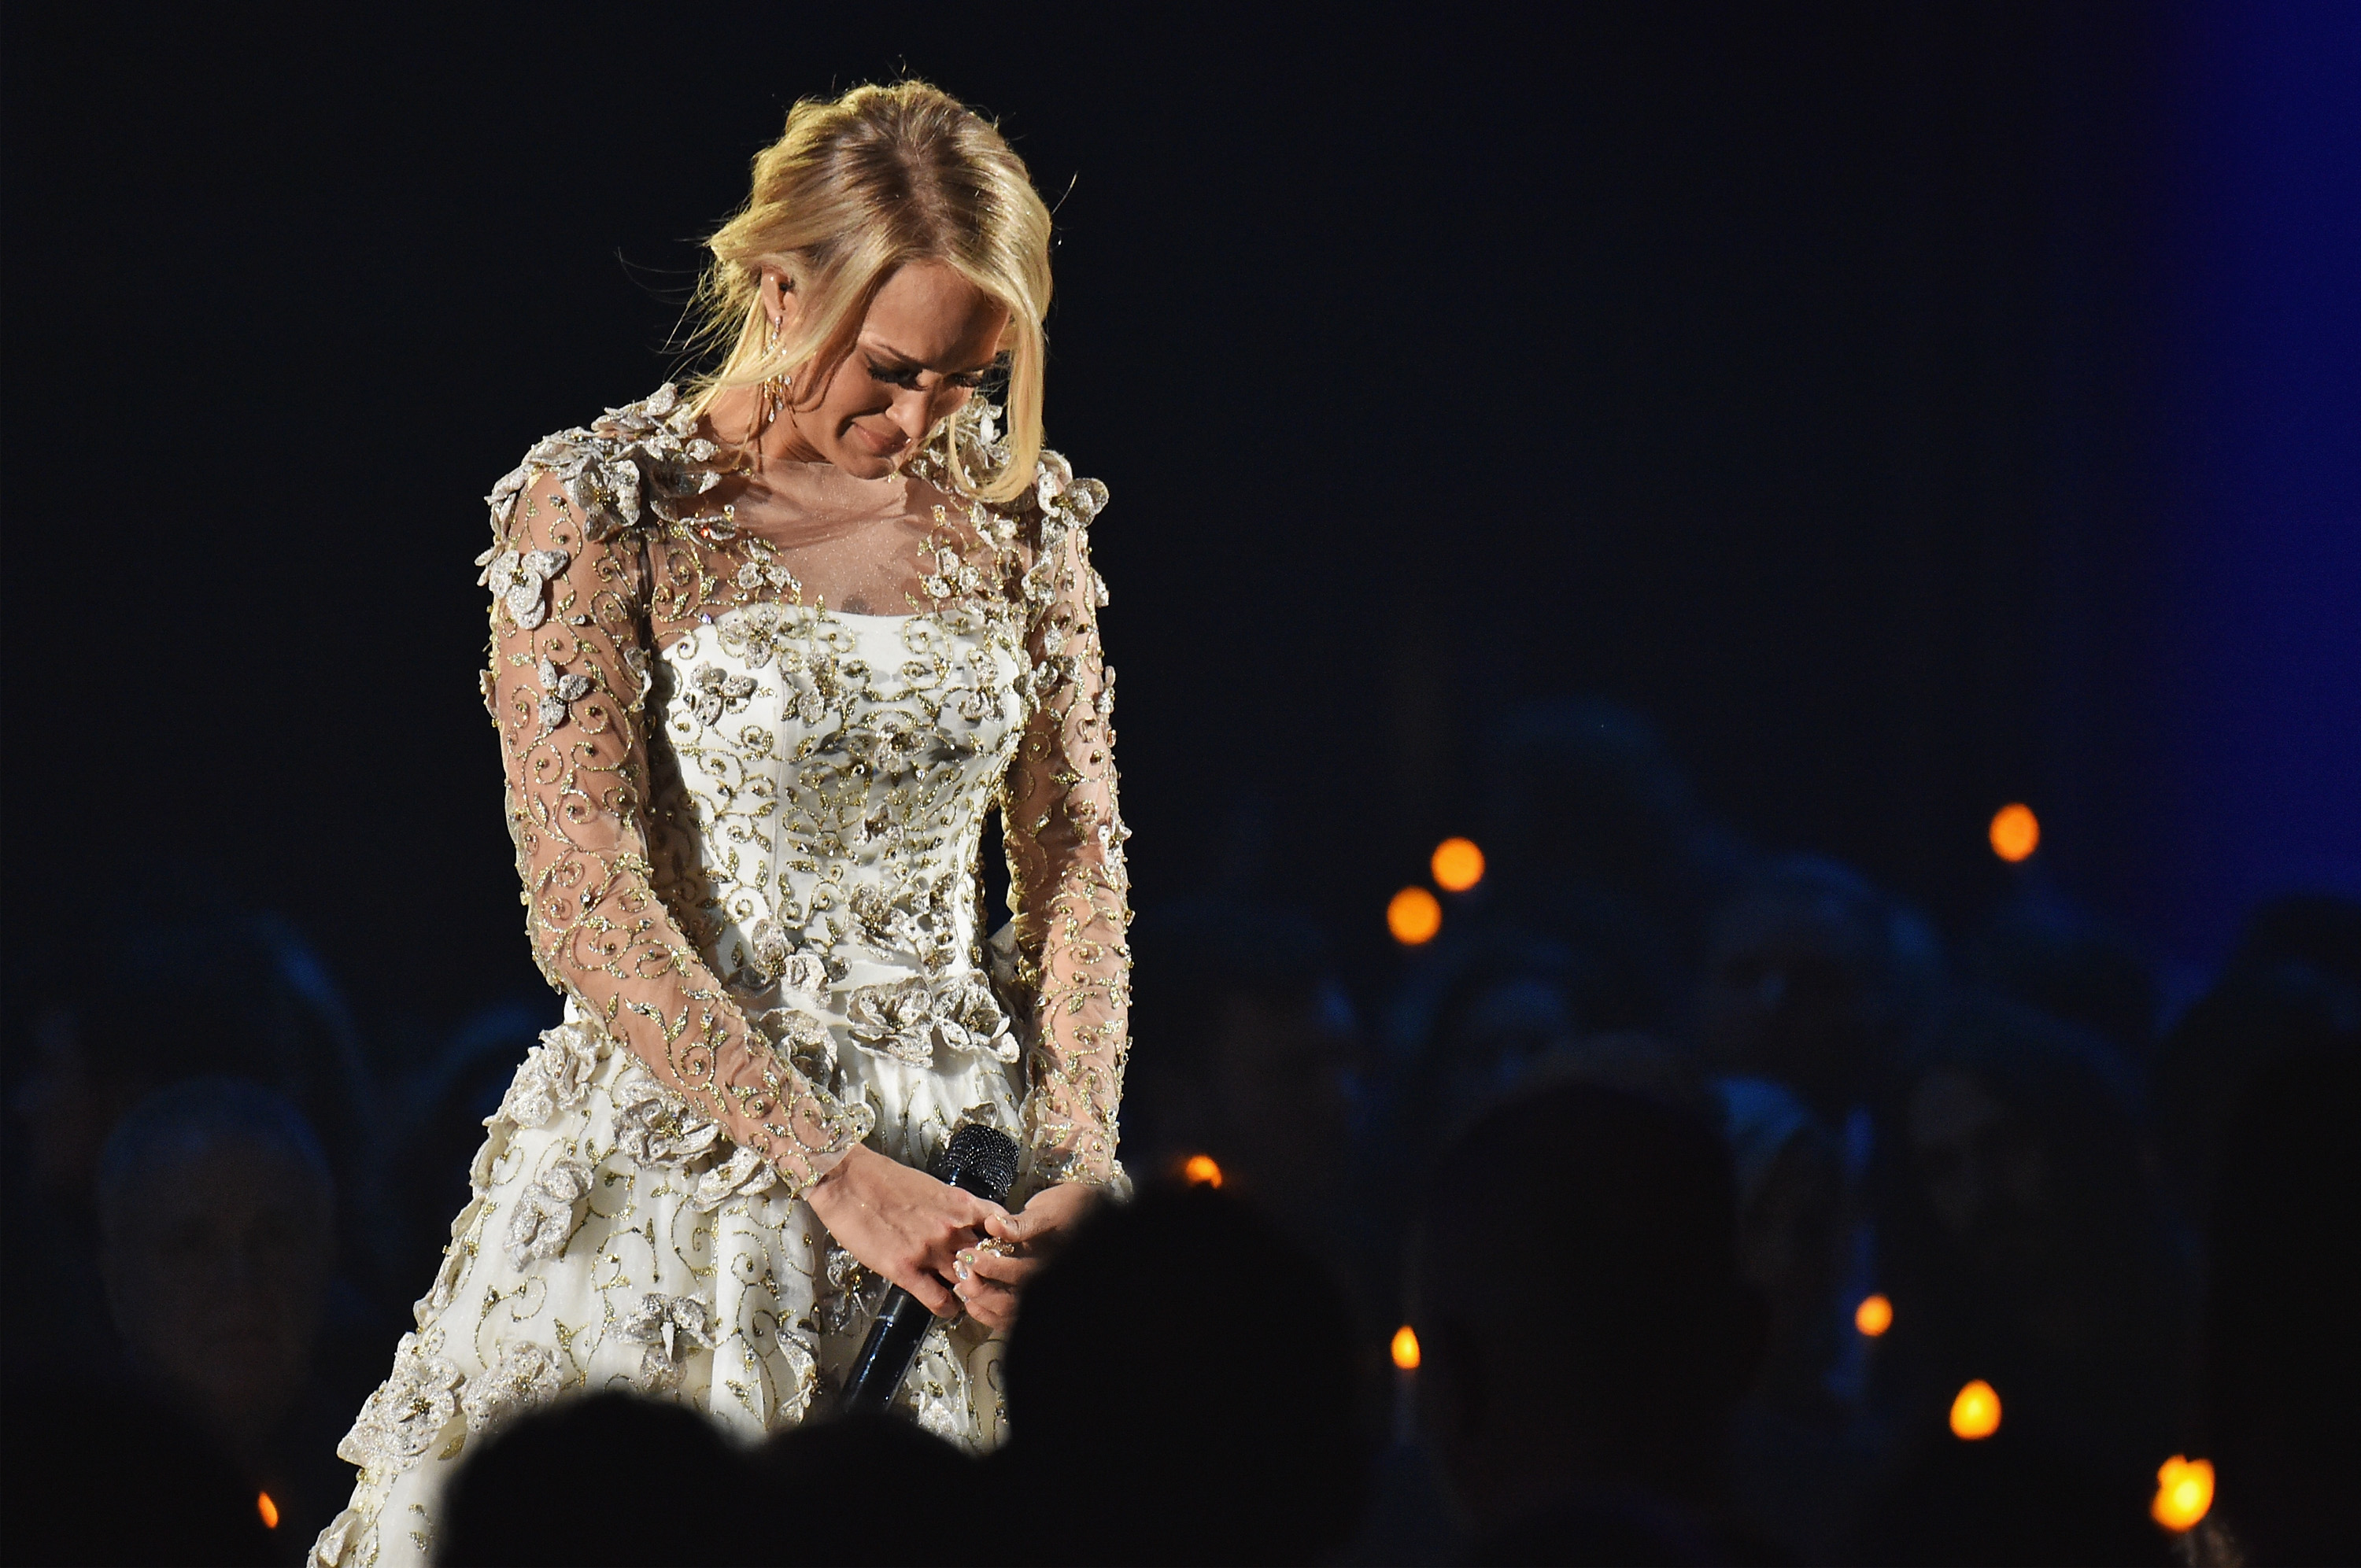 Carrie Underwood Performs Softly And Tenderly Jesus Is